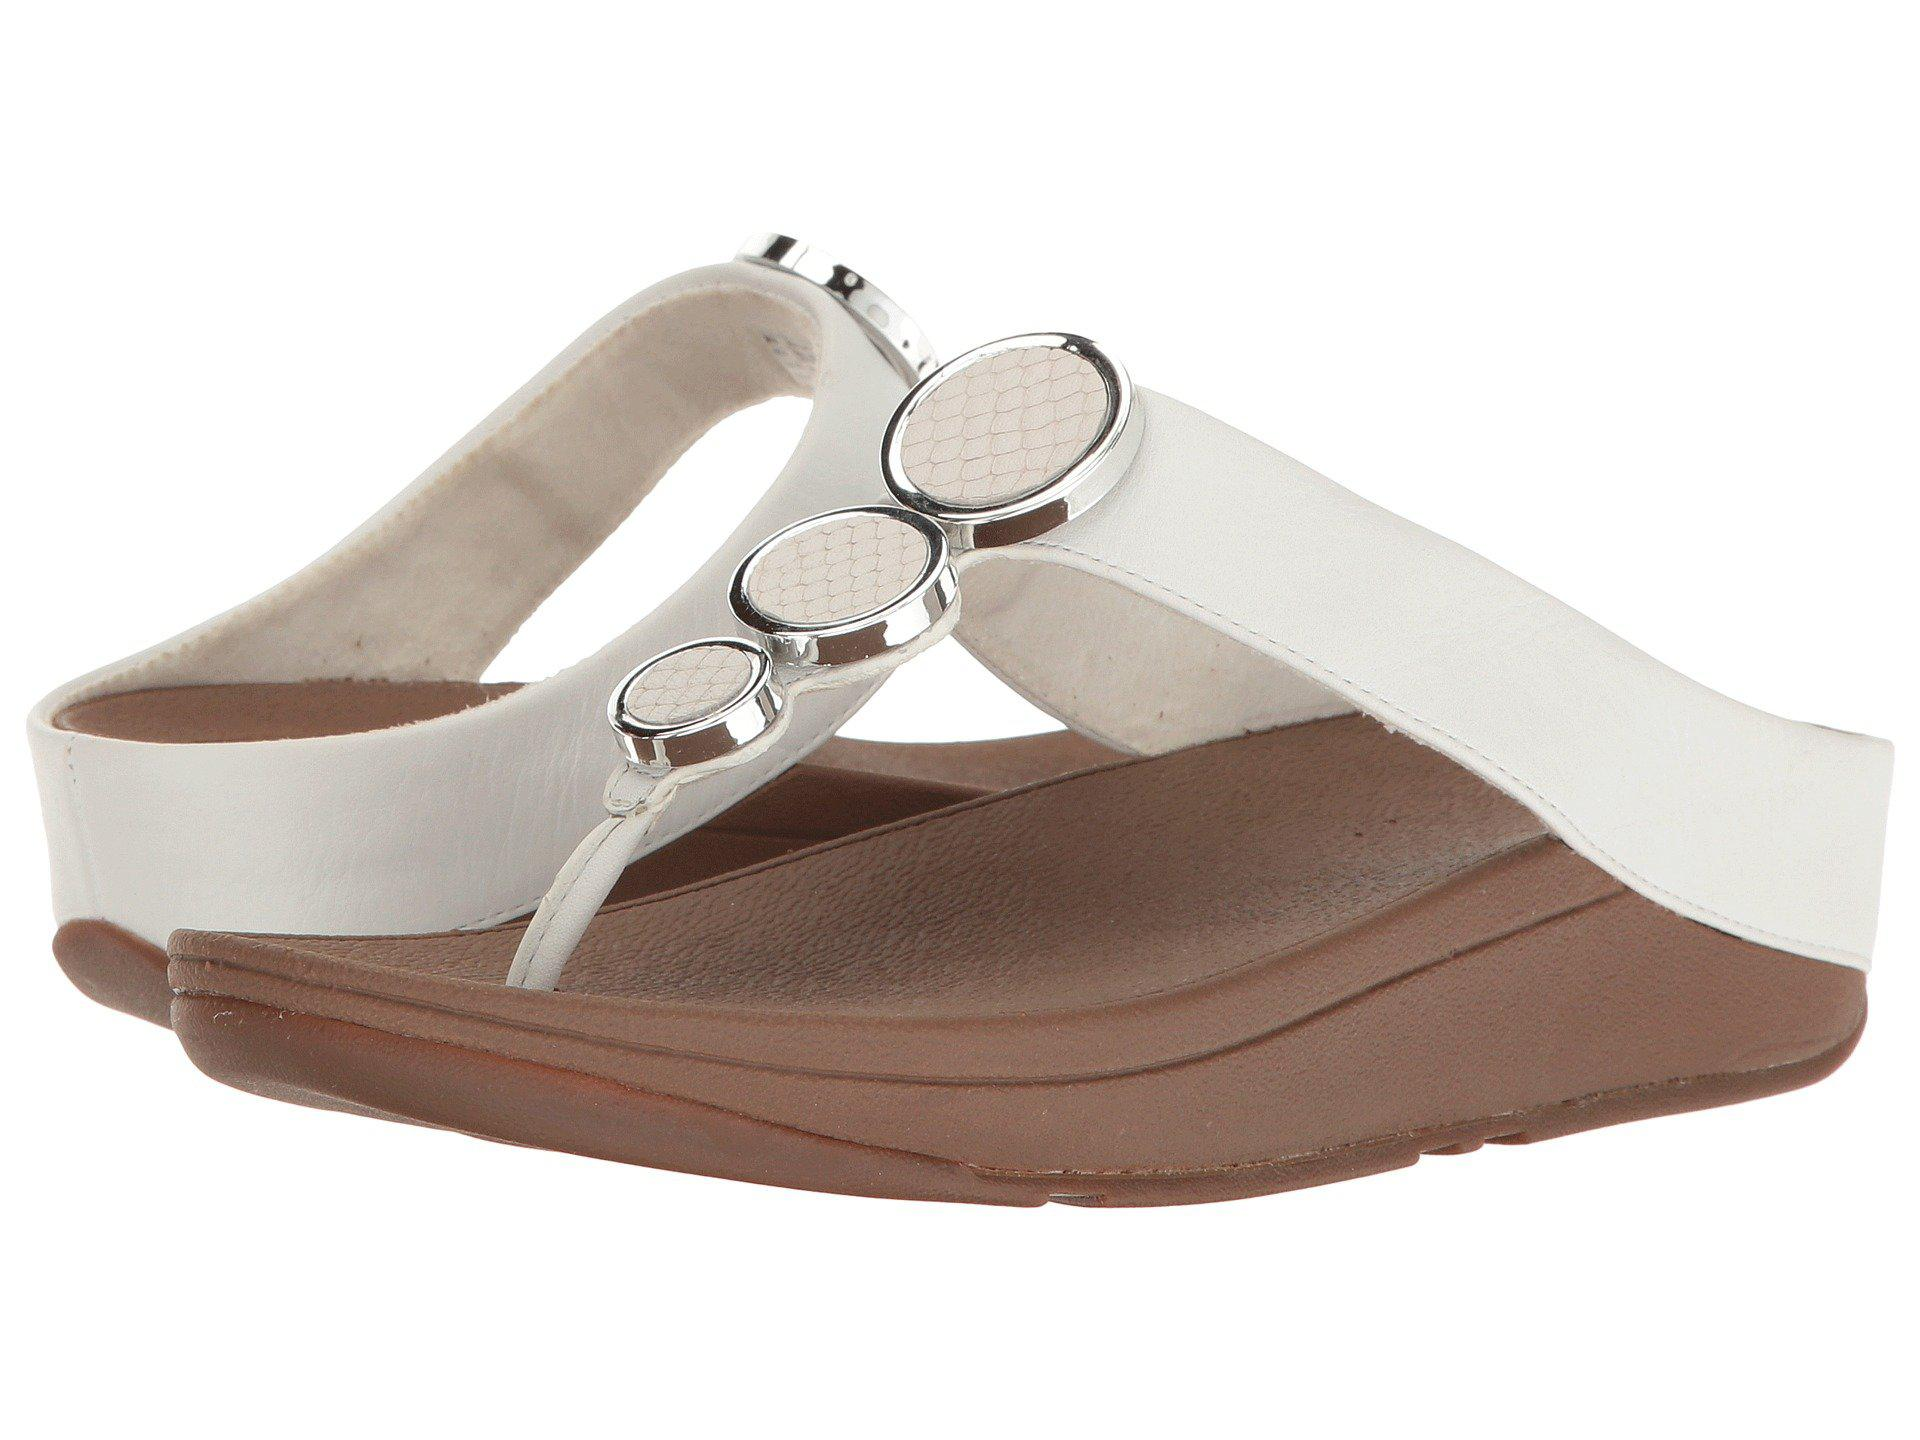 ba2c86cd29cccb Lyst - Fitflop Halo Toe Thong Sandals